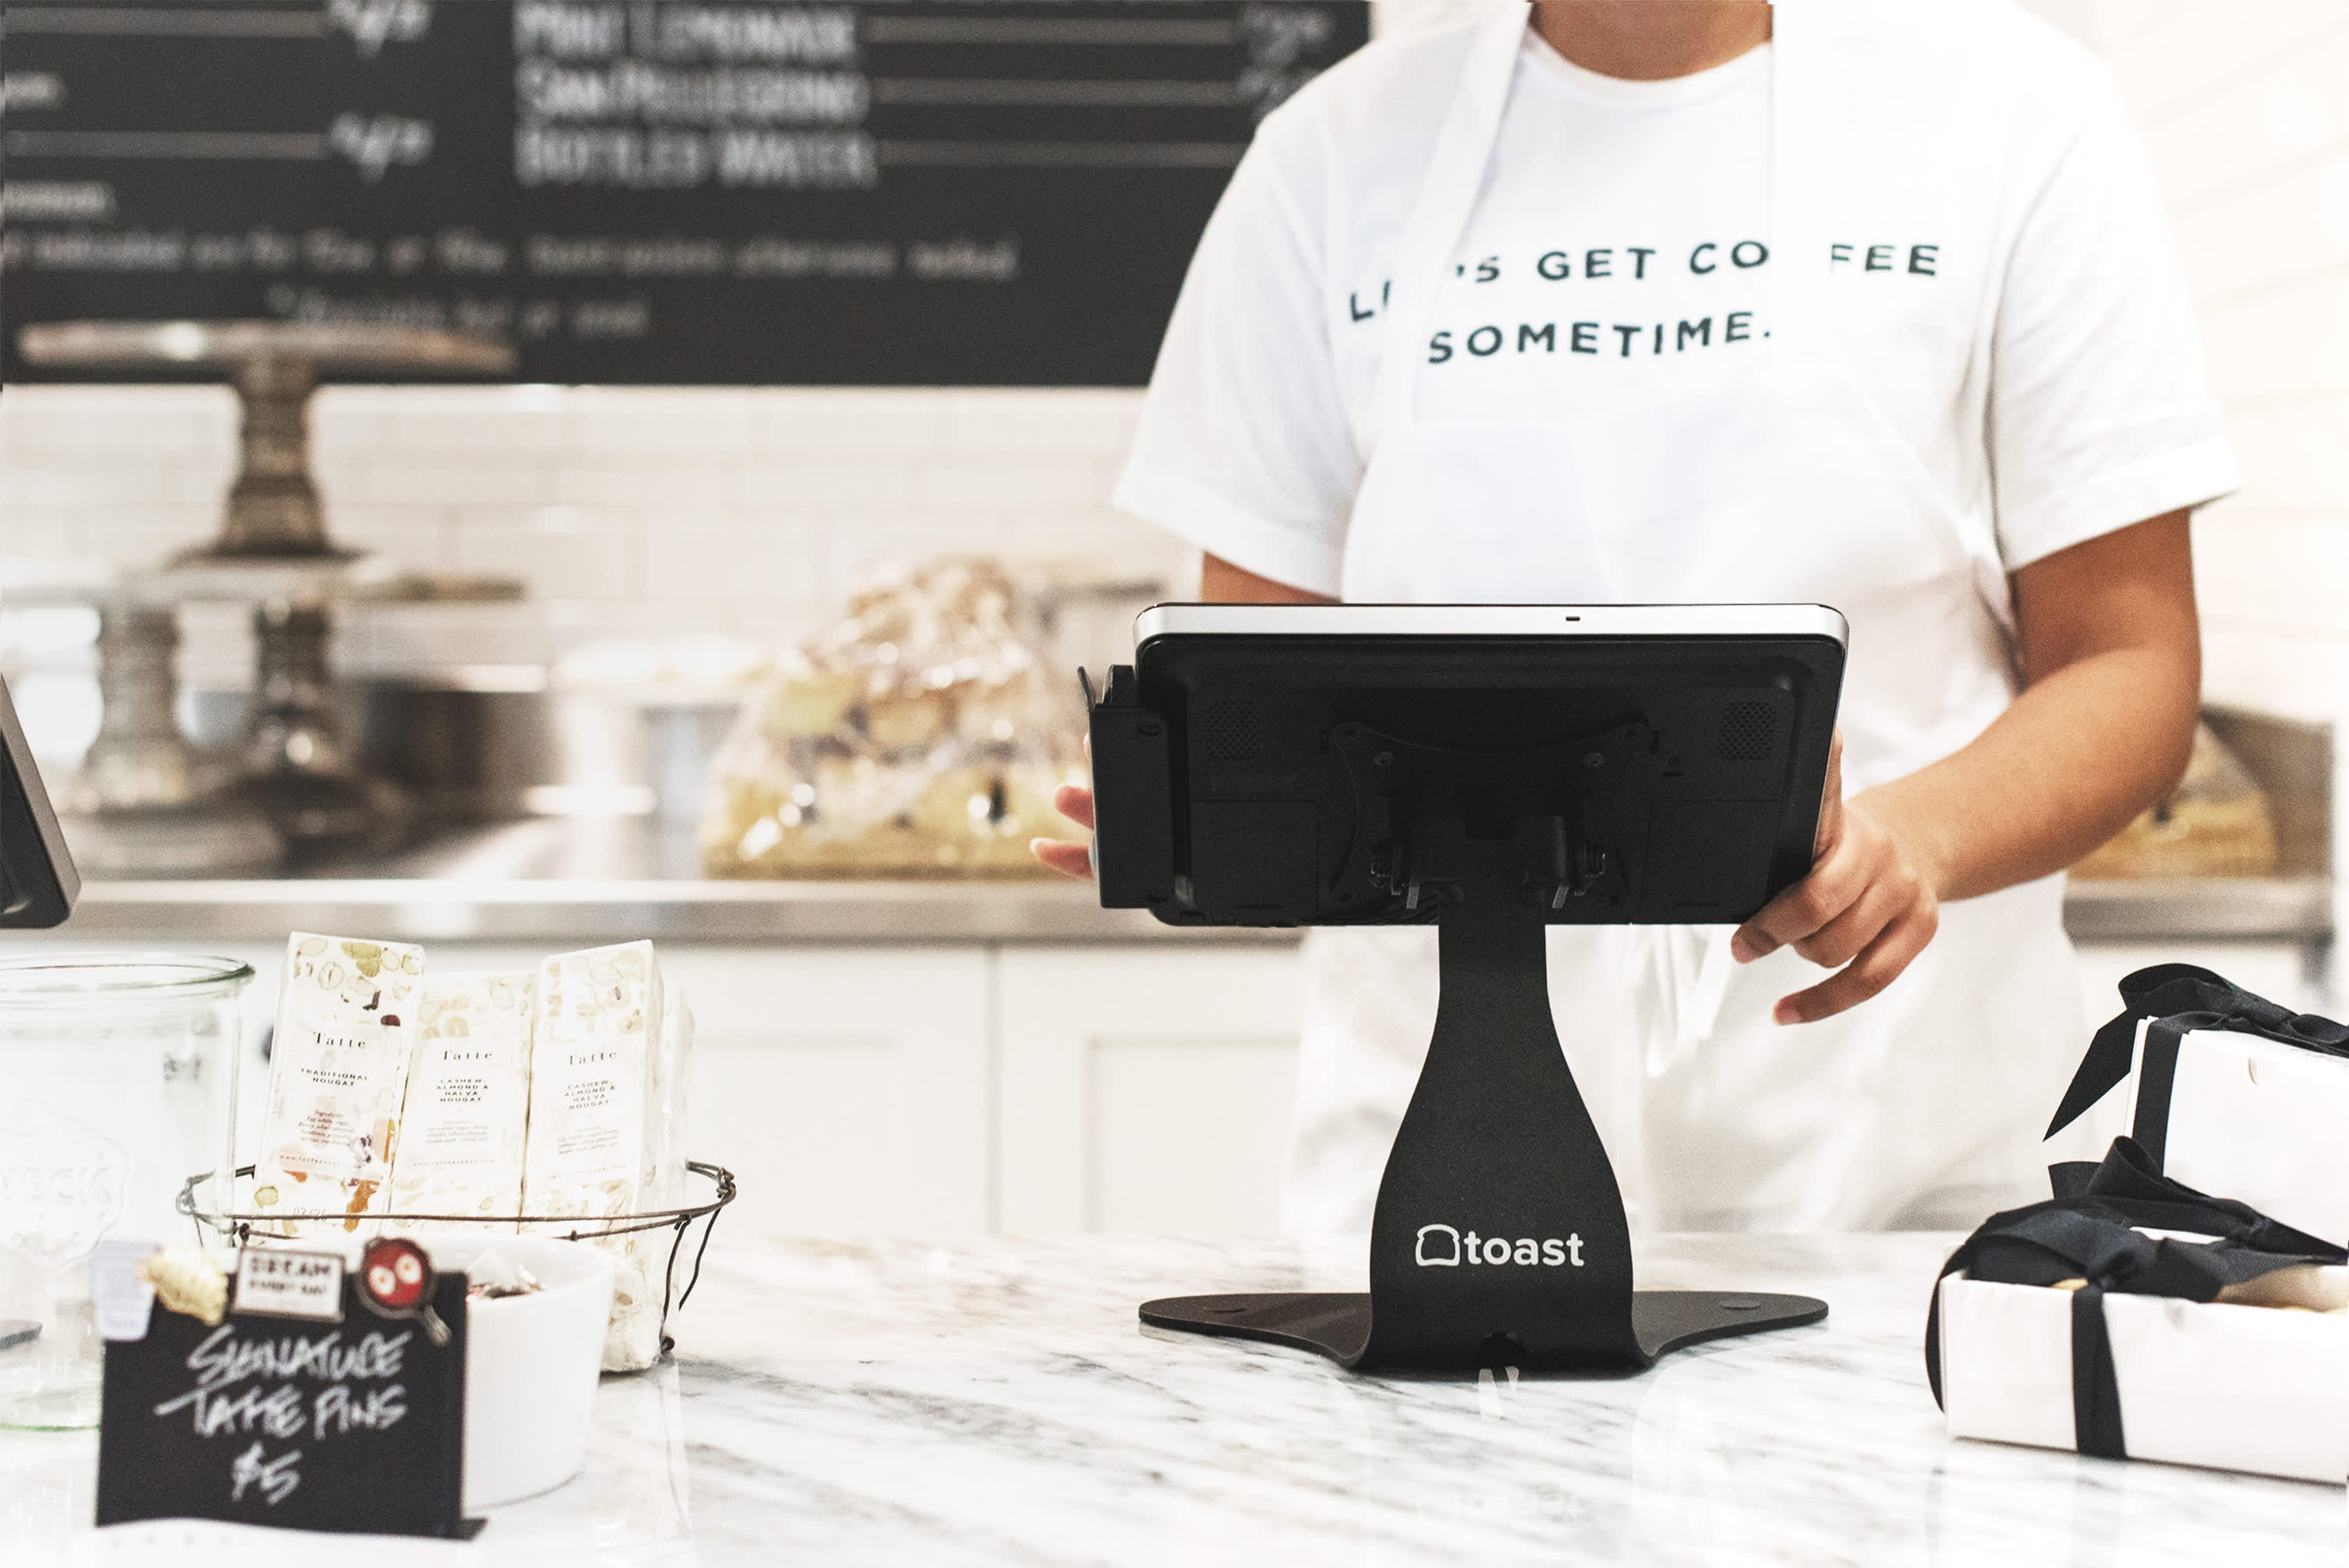 Toast point of sale system